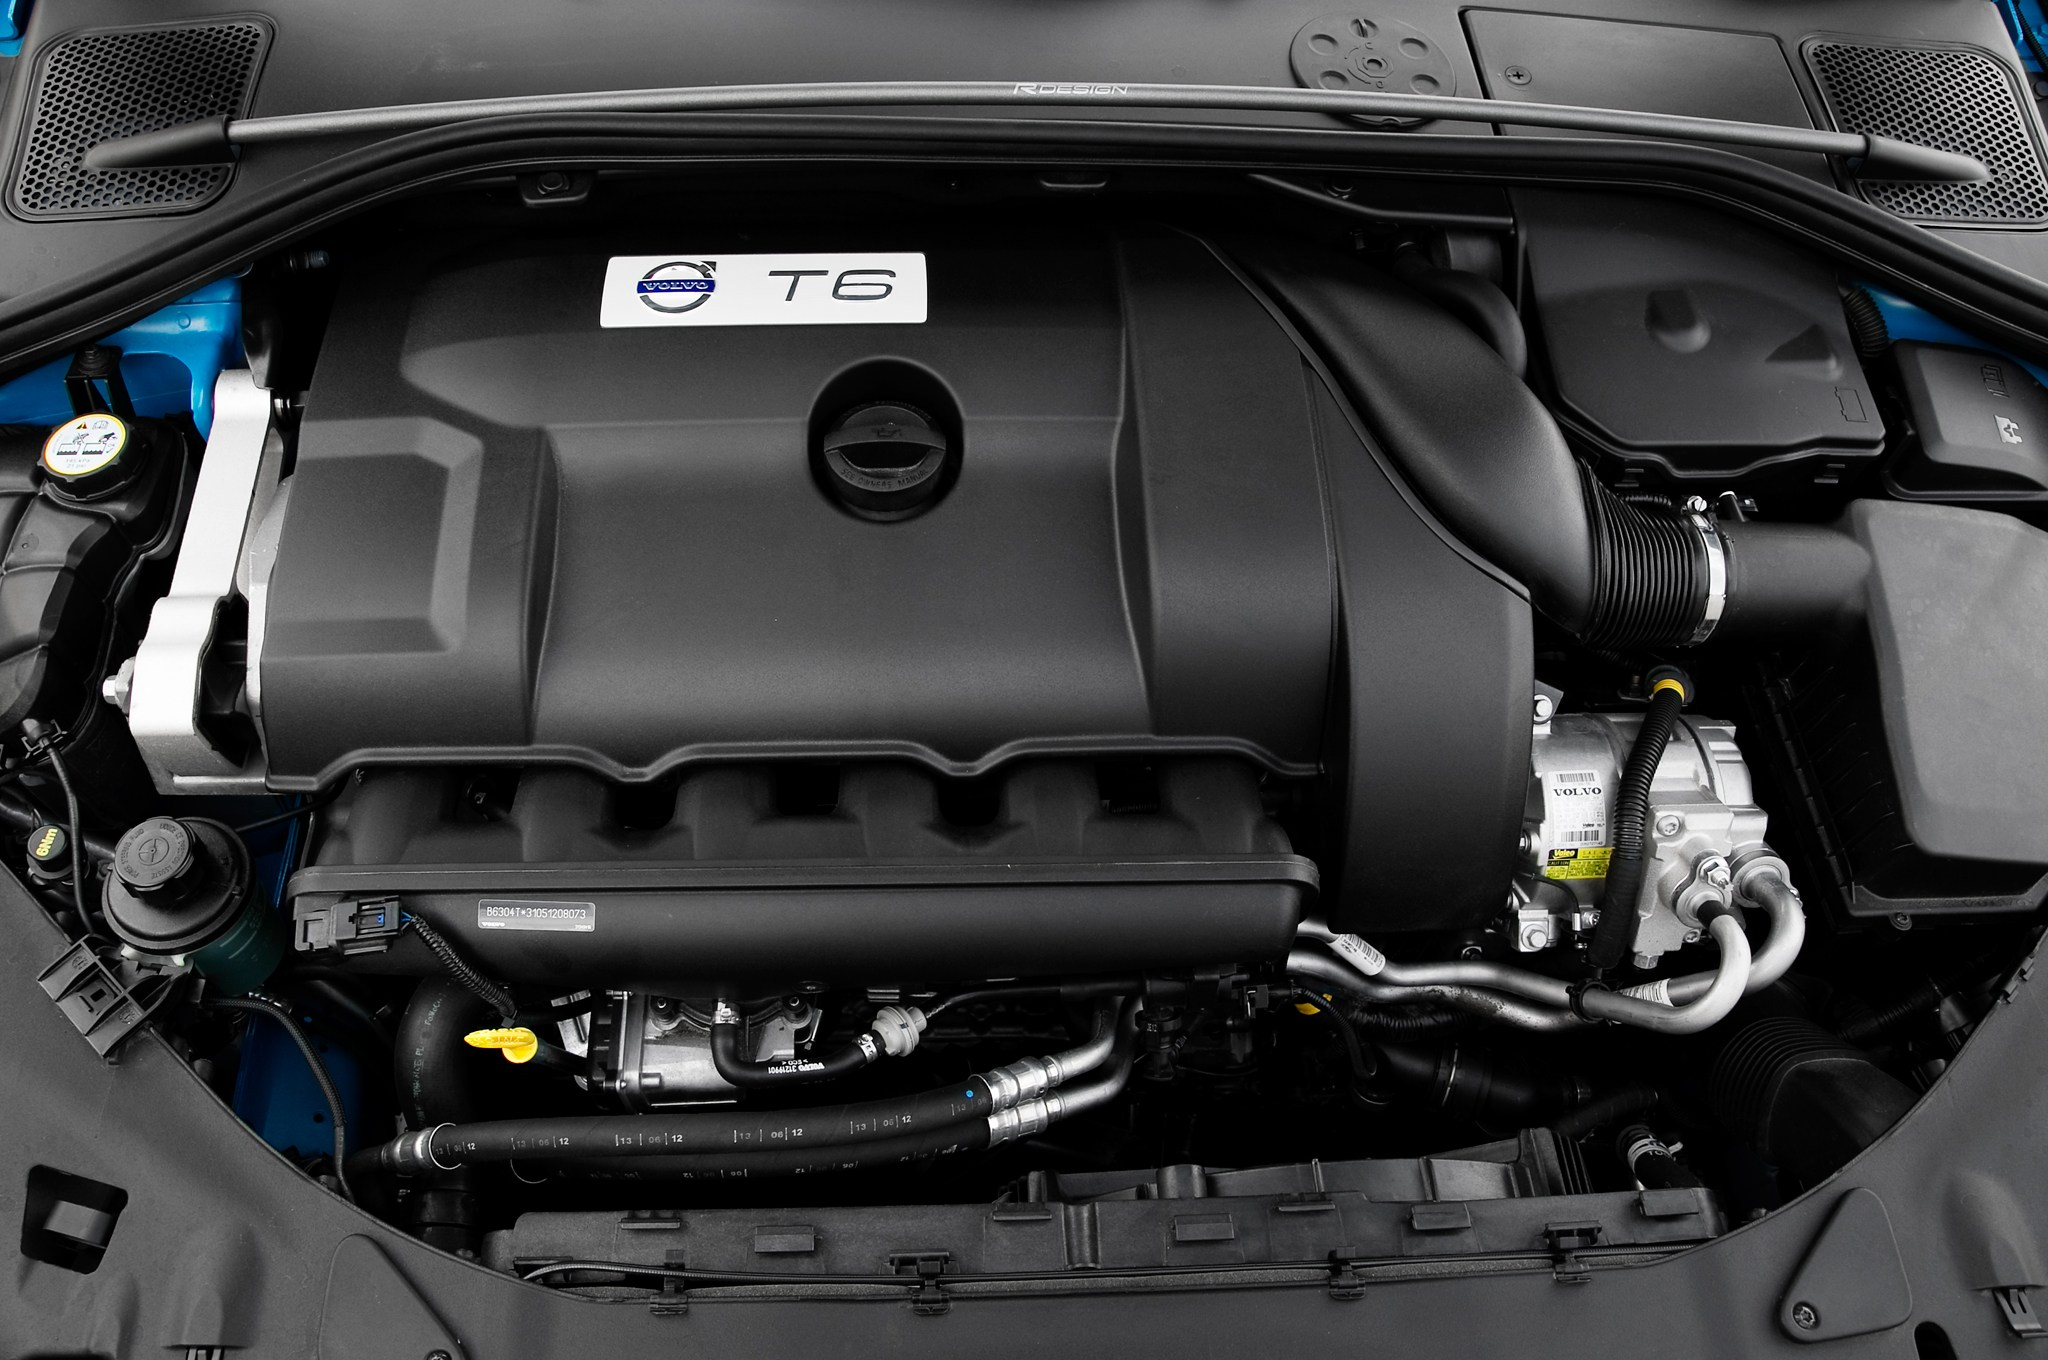 Volvo engine photo - 4